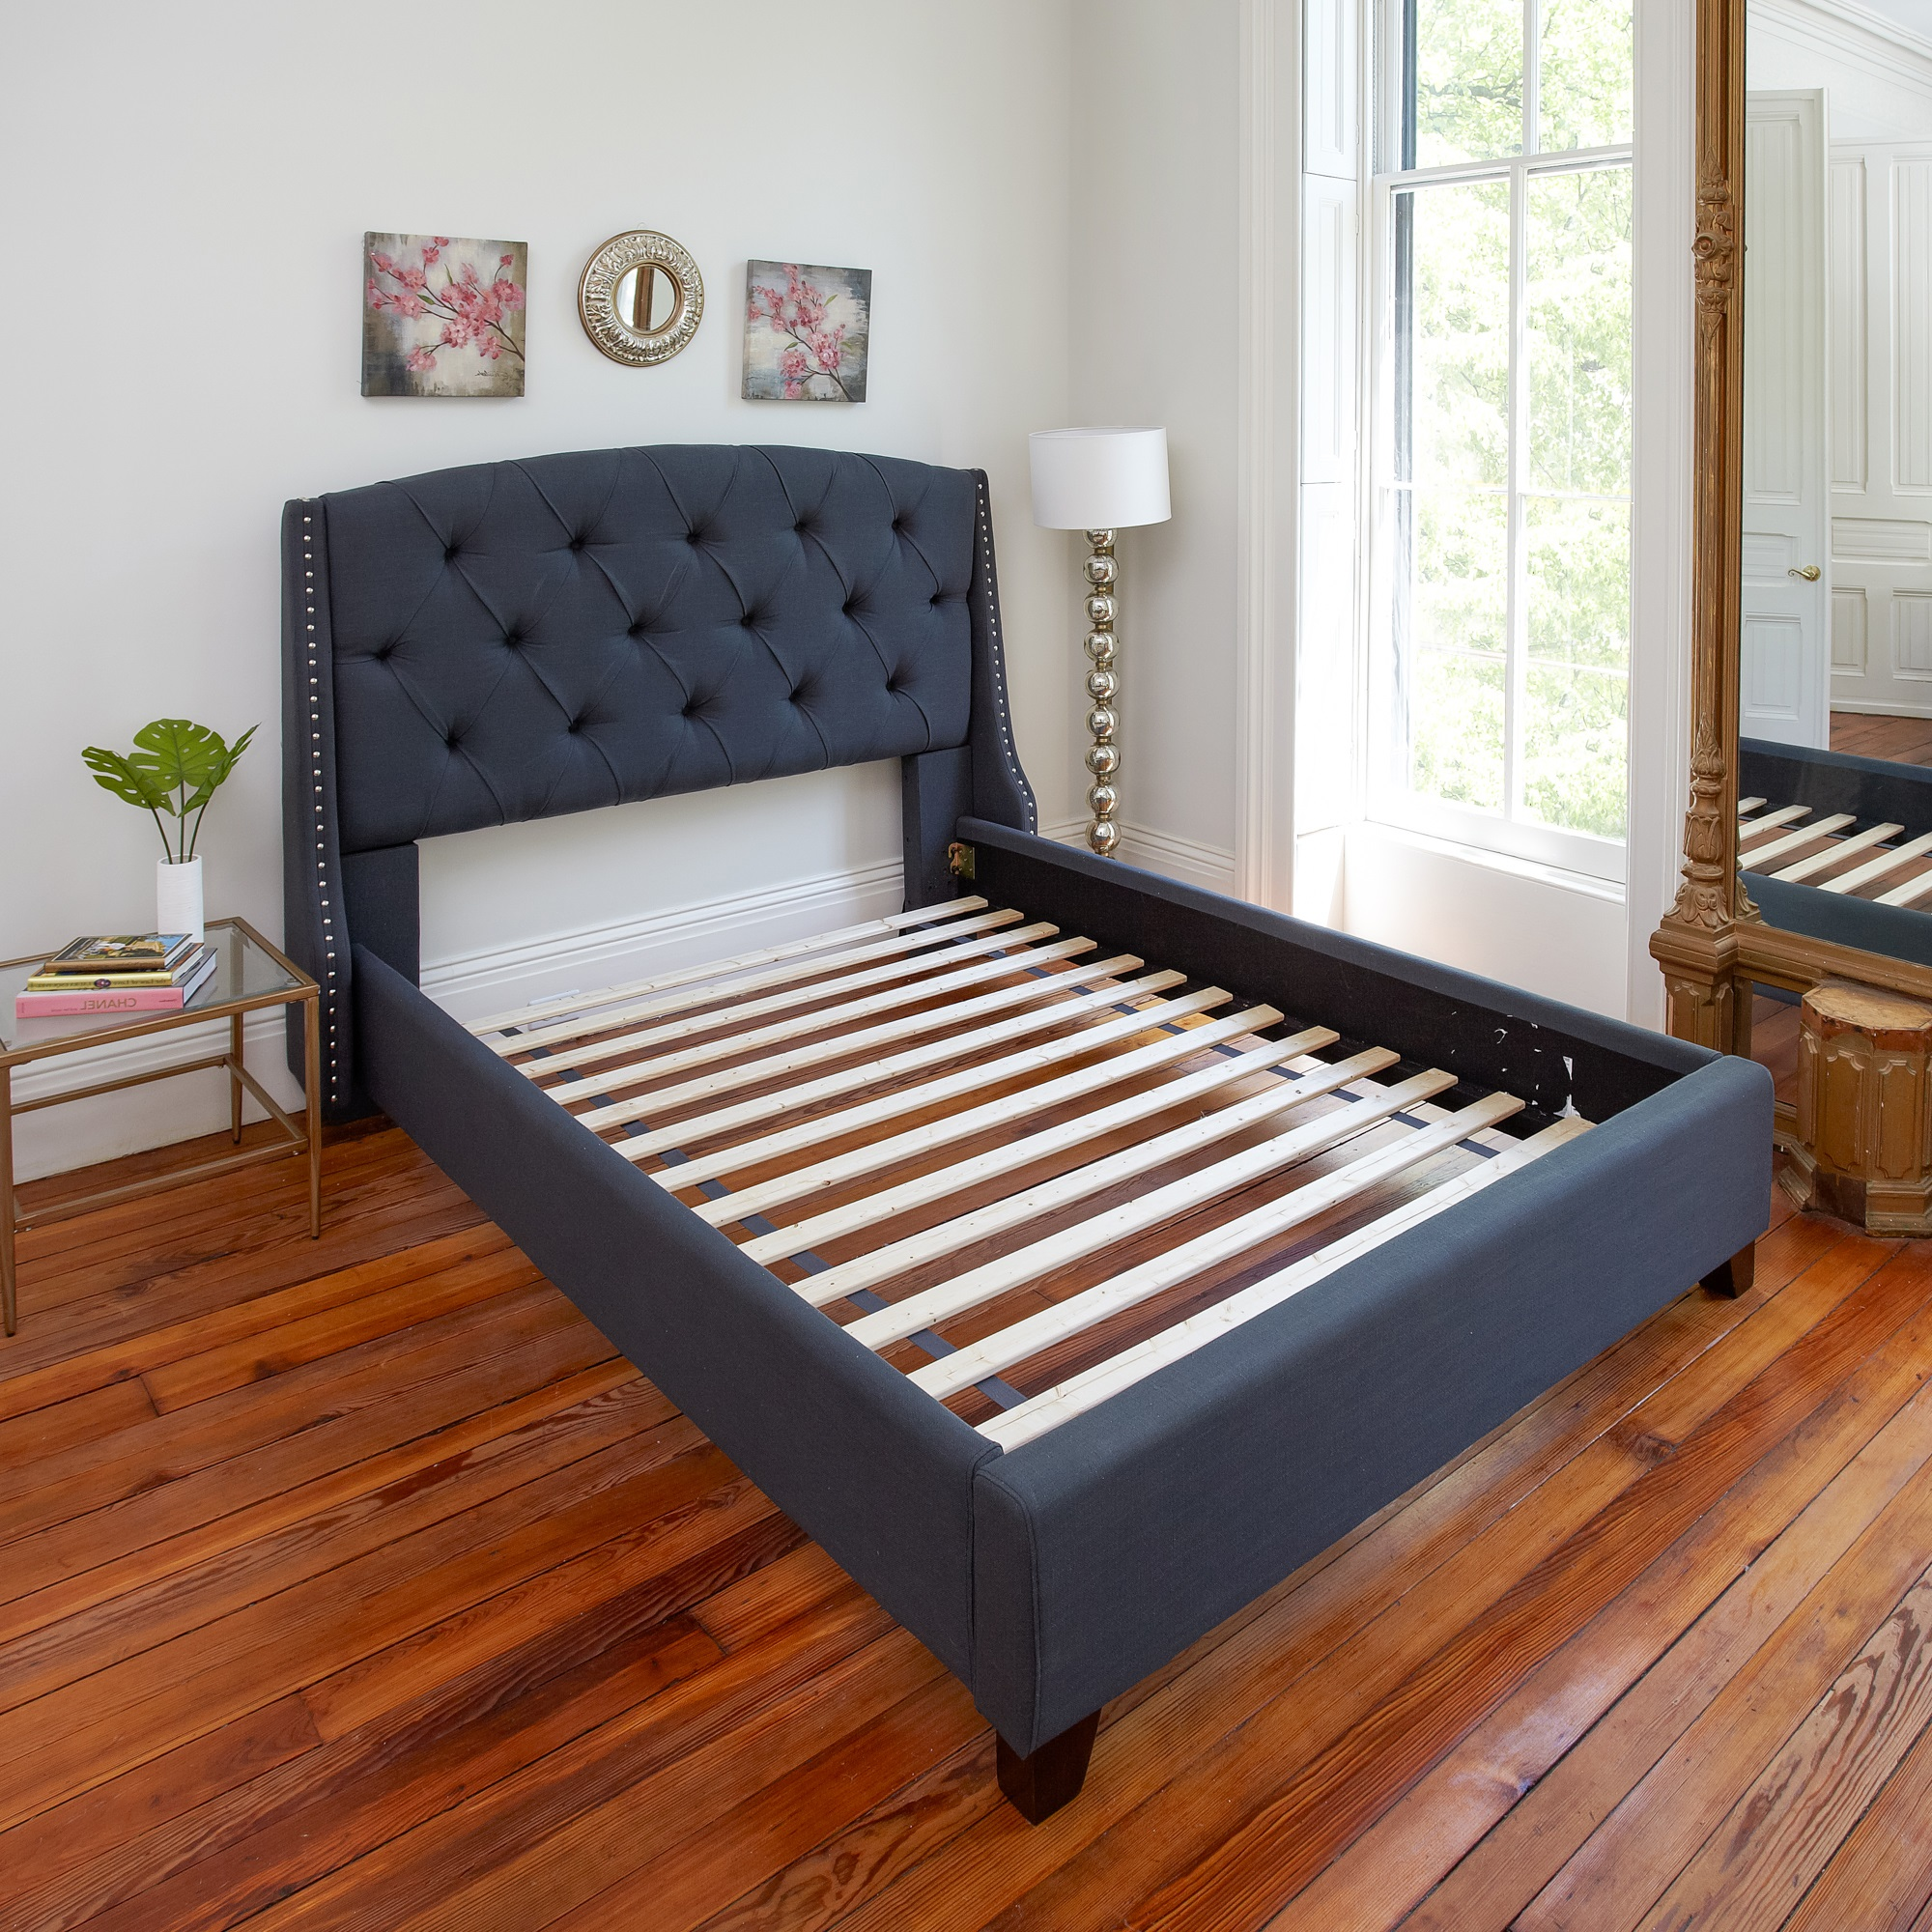 Modern Sleep Solid Wood Bed Support Slats | Bunkie Board, Multiple Sizes